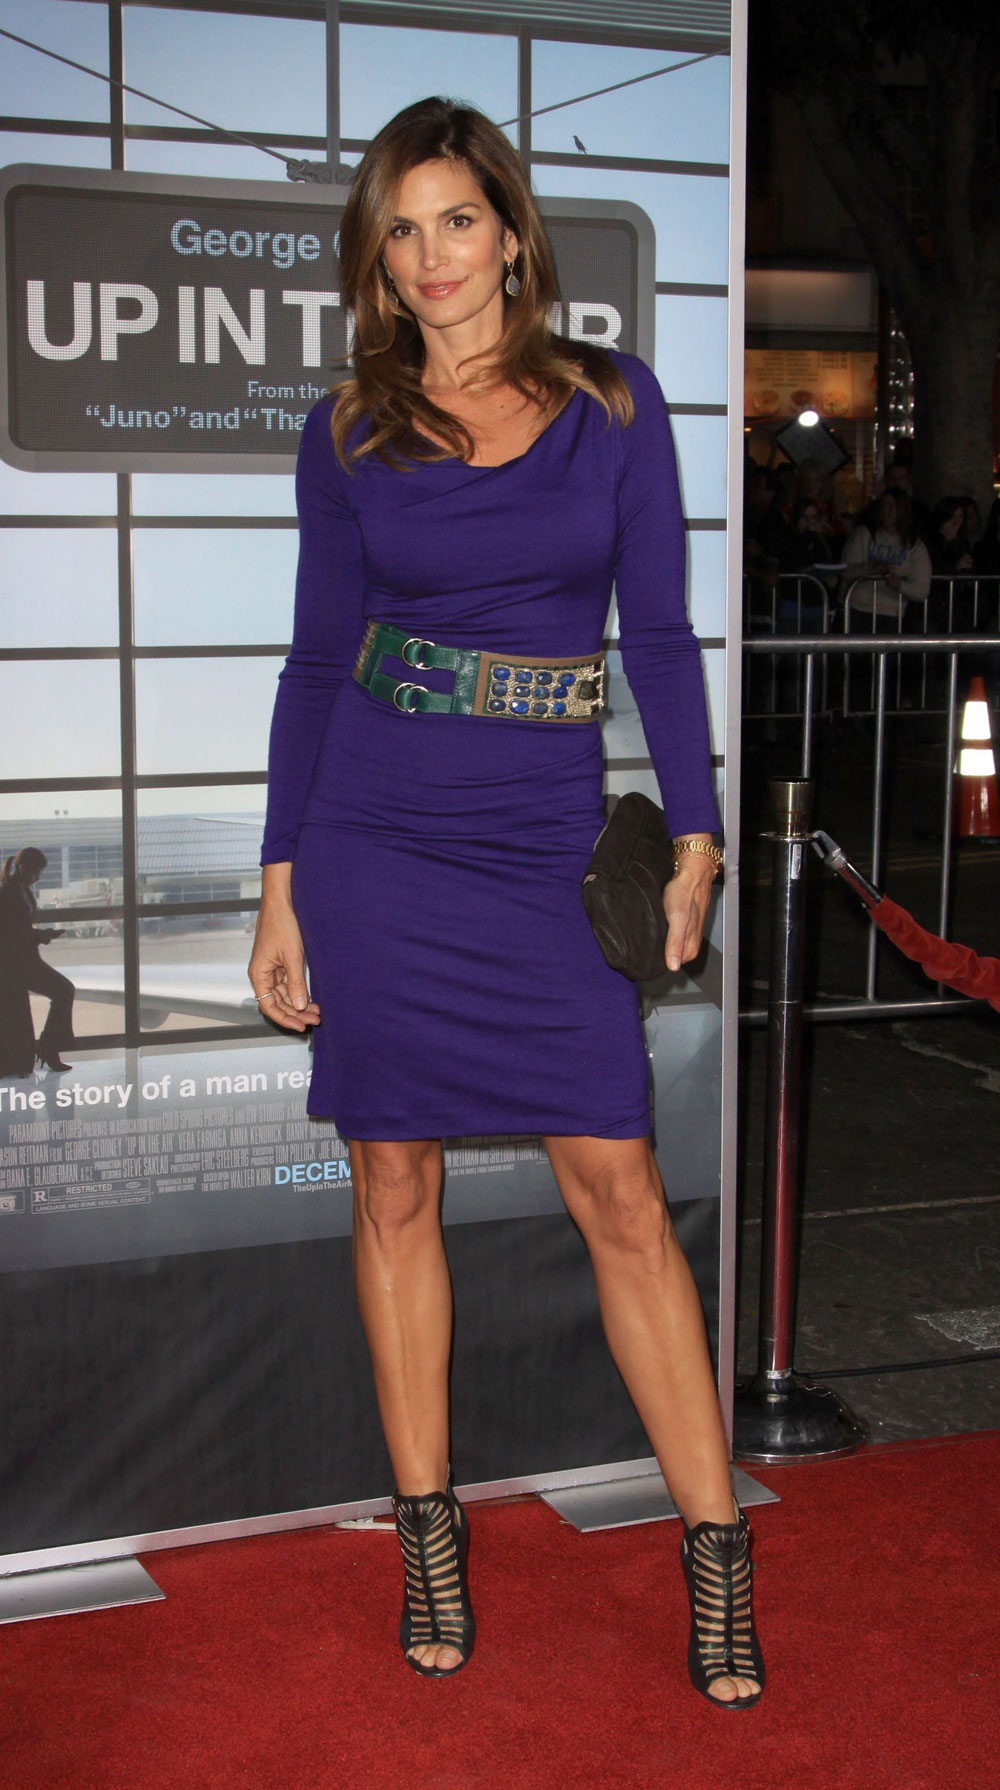 Cindy Crawford Admits to Using Botox, But These 5 Stars Deny Going Under theKnife